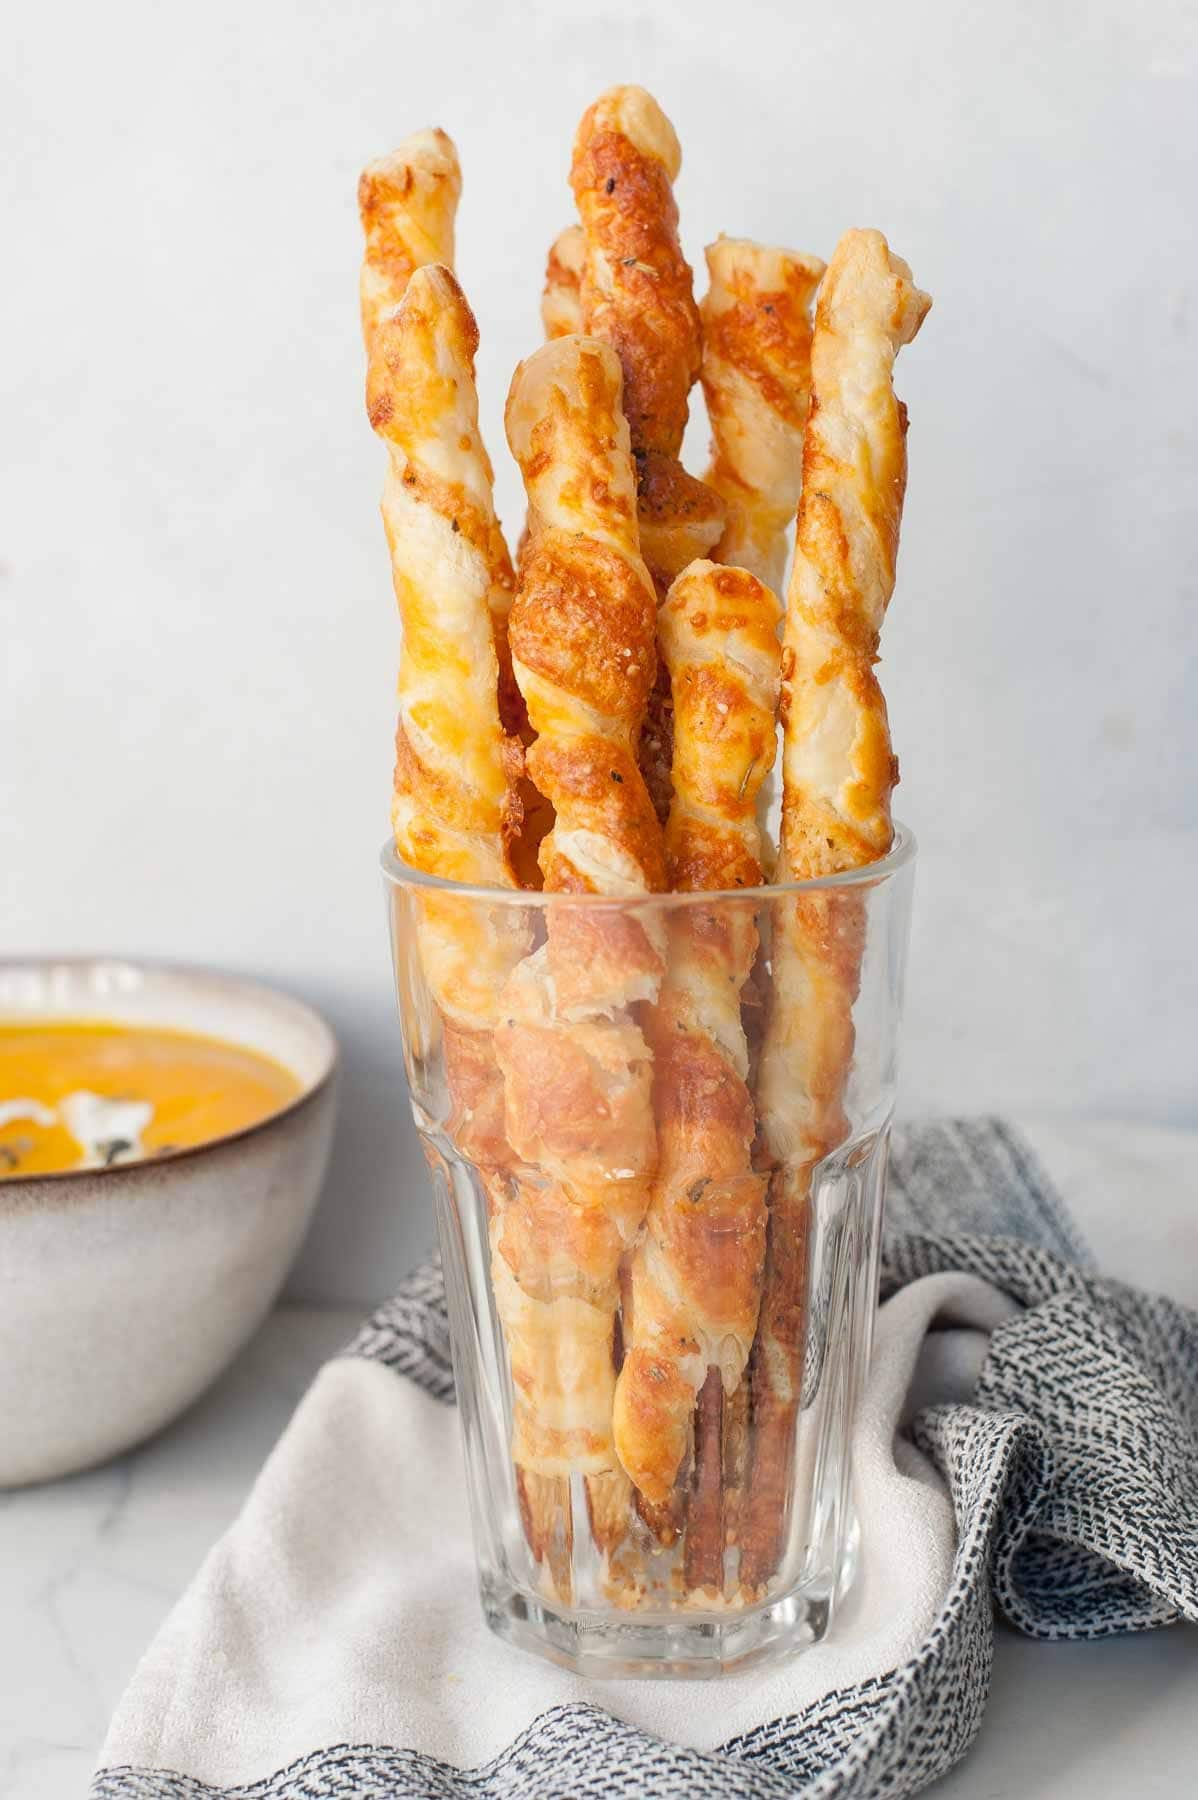 Puff pastry cheese straws in a glass